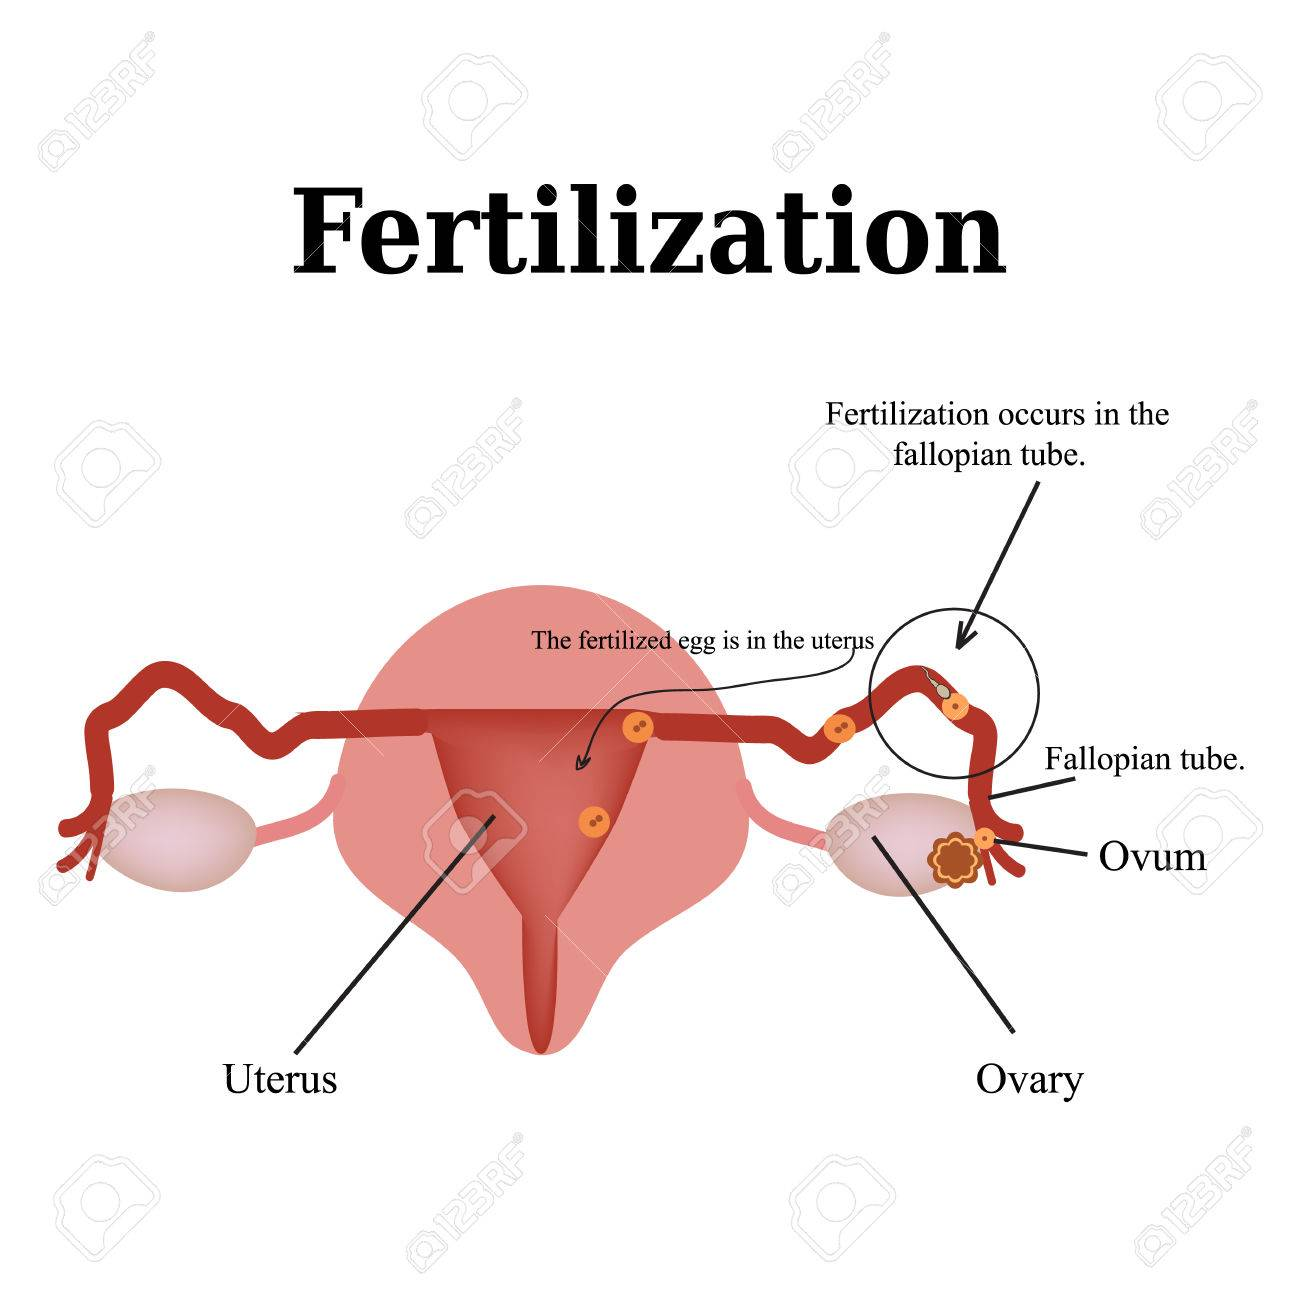 diagram of the structure of the pelvic organs  fertilization  vector  illustration on isolated background